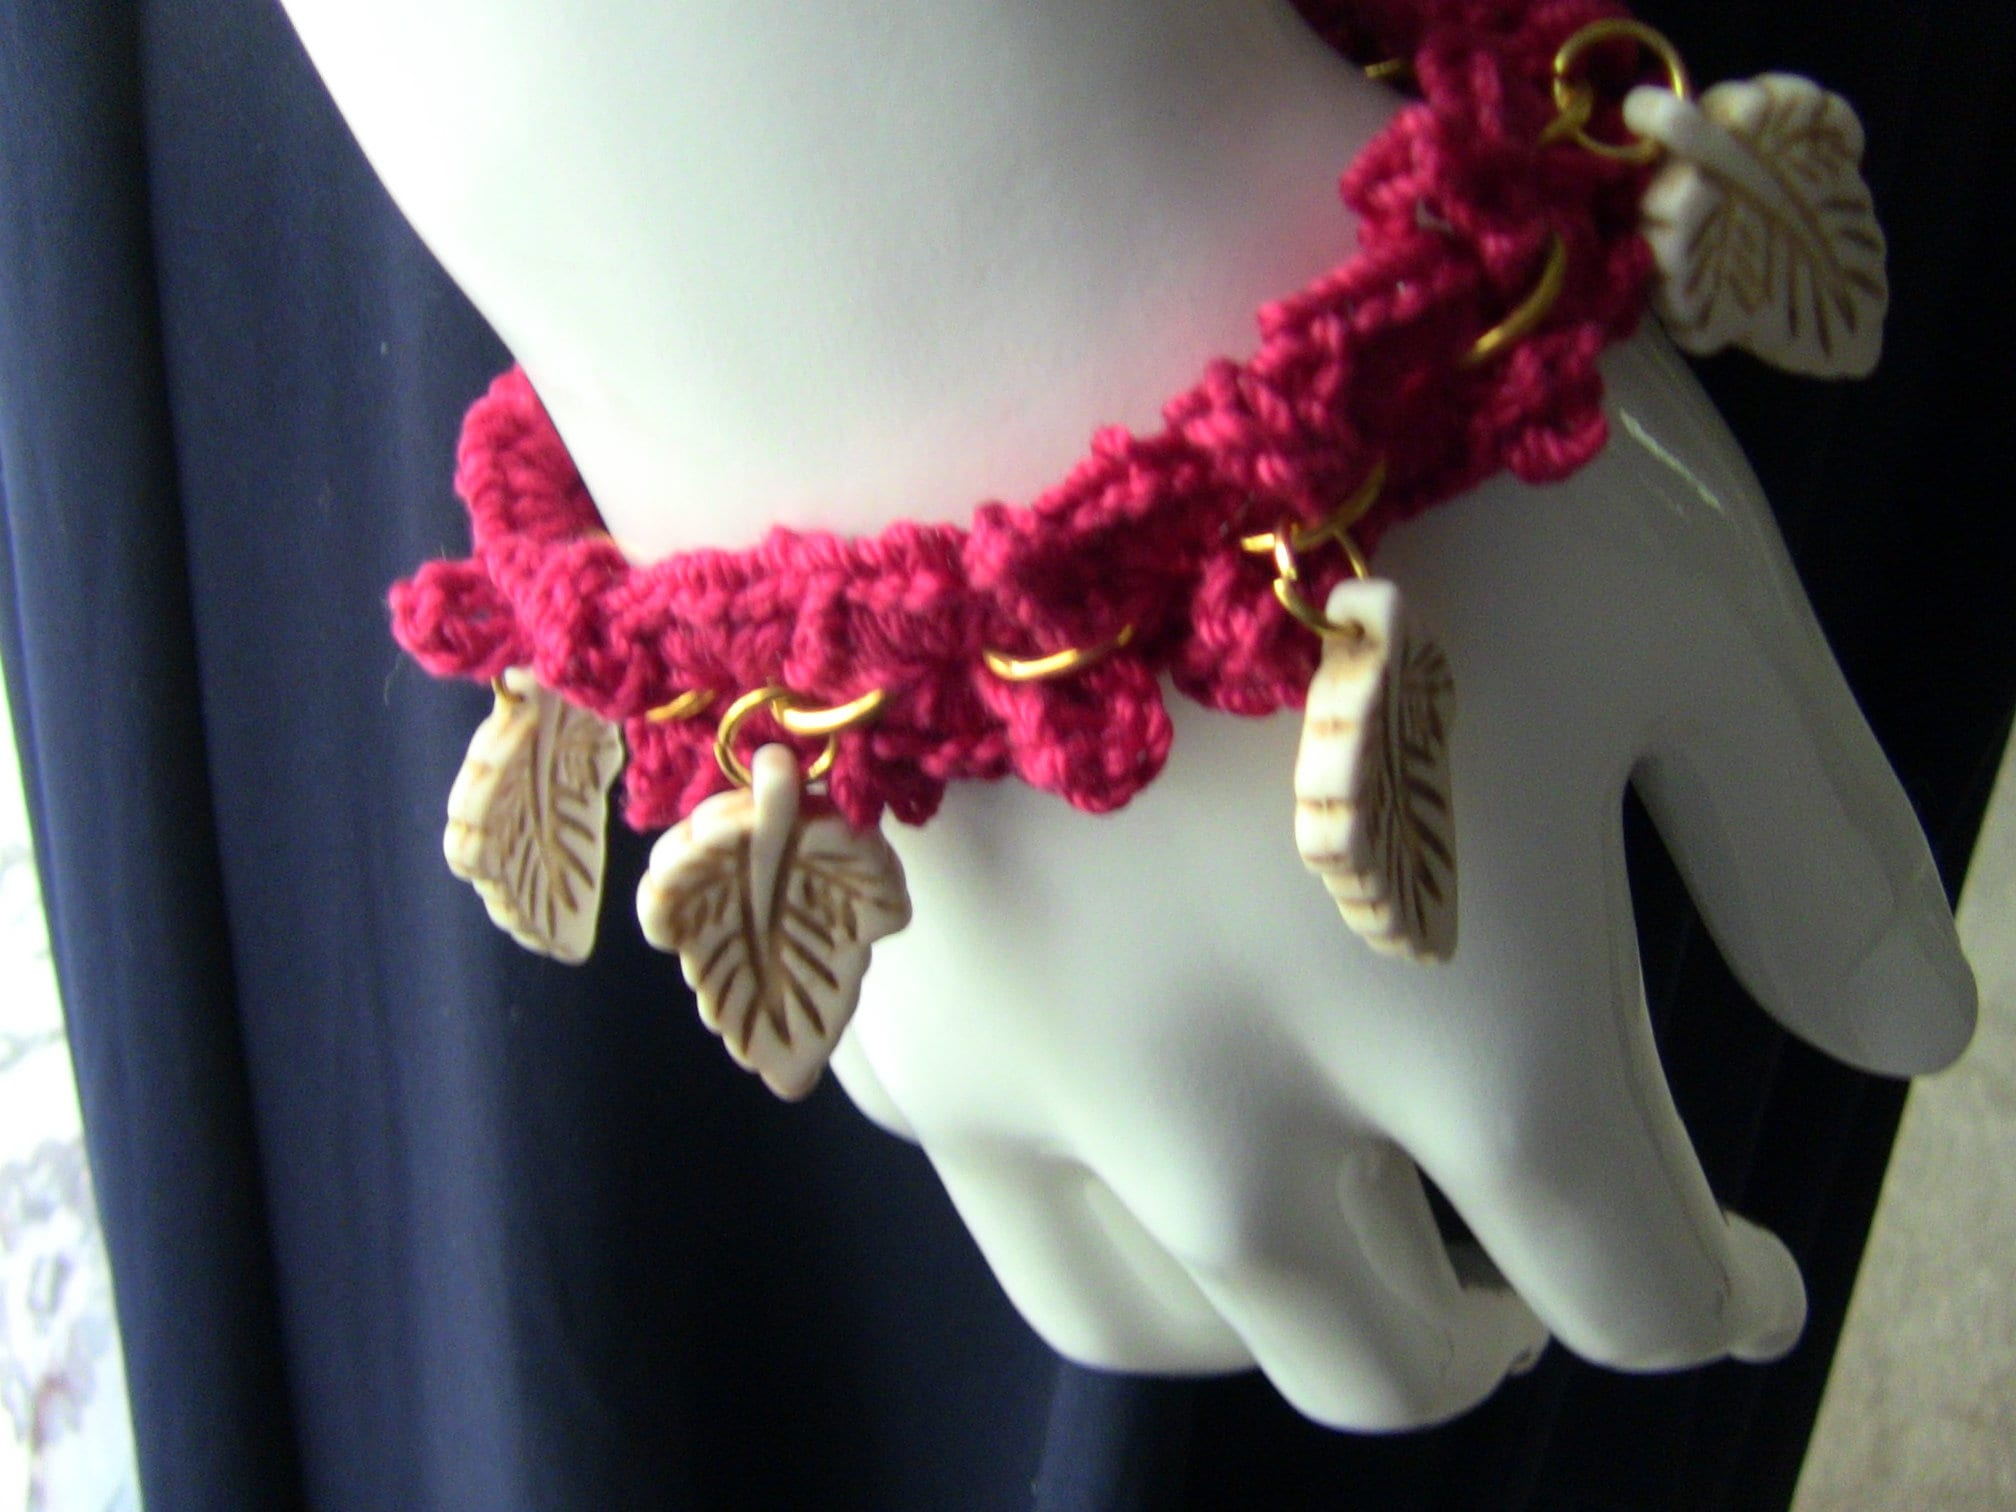 Bracelet Crocheted Bracelet Gift For Her Red Crocheted Bracelet Leaf Charm Bracelet Womens Bracelet Teen Girls Bracelet